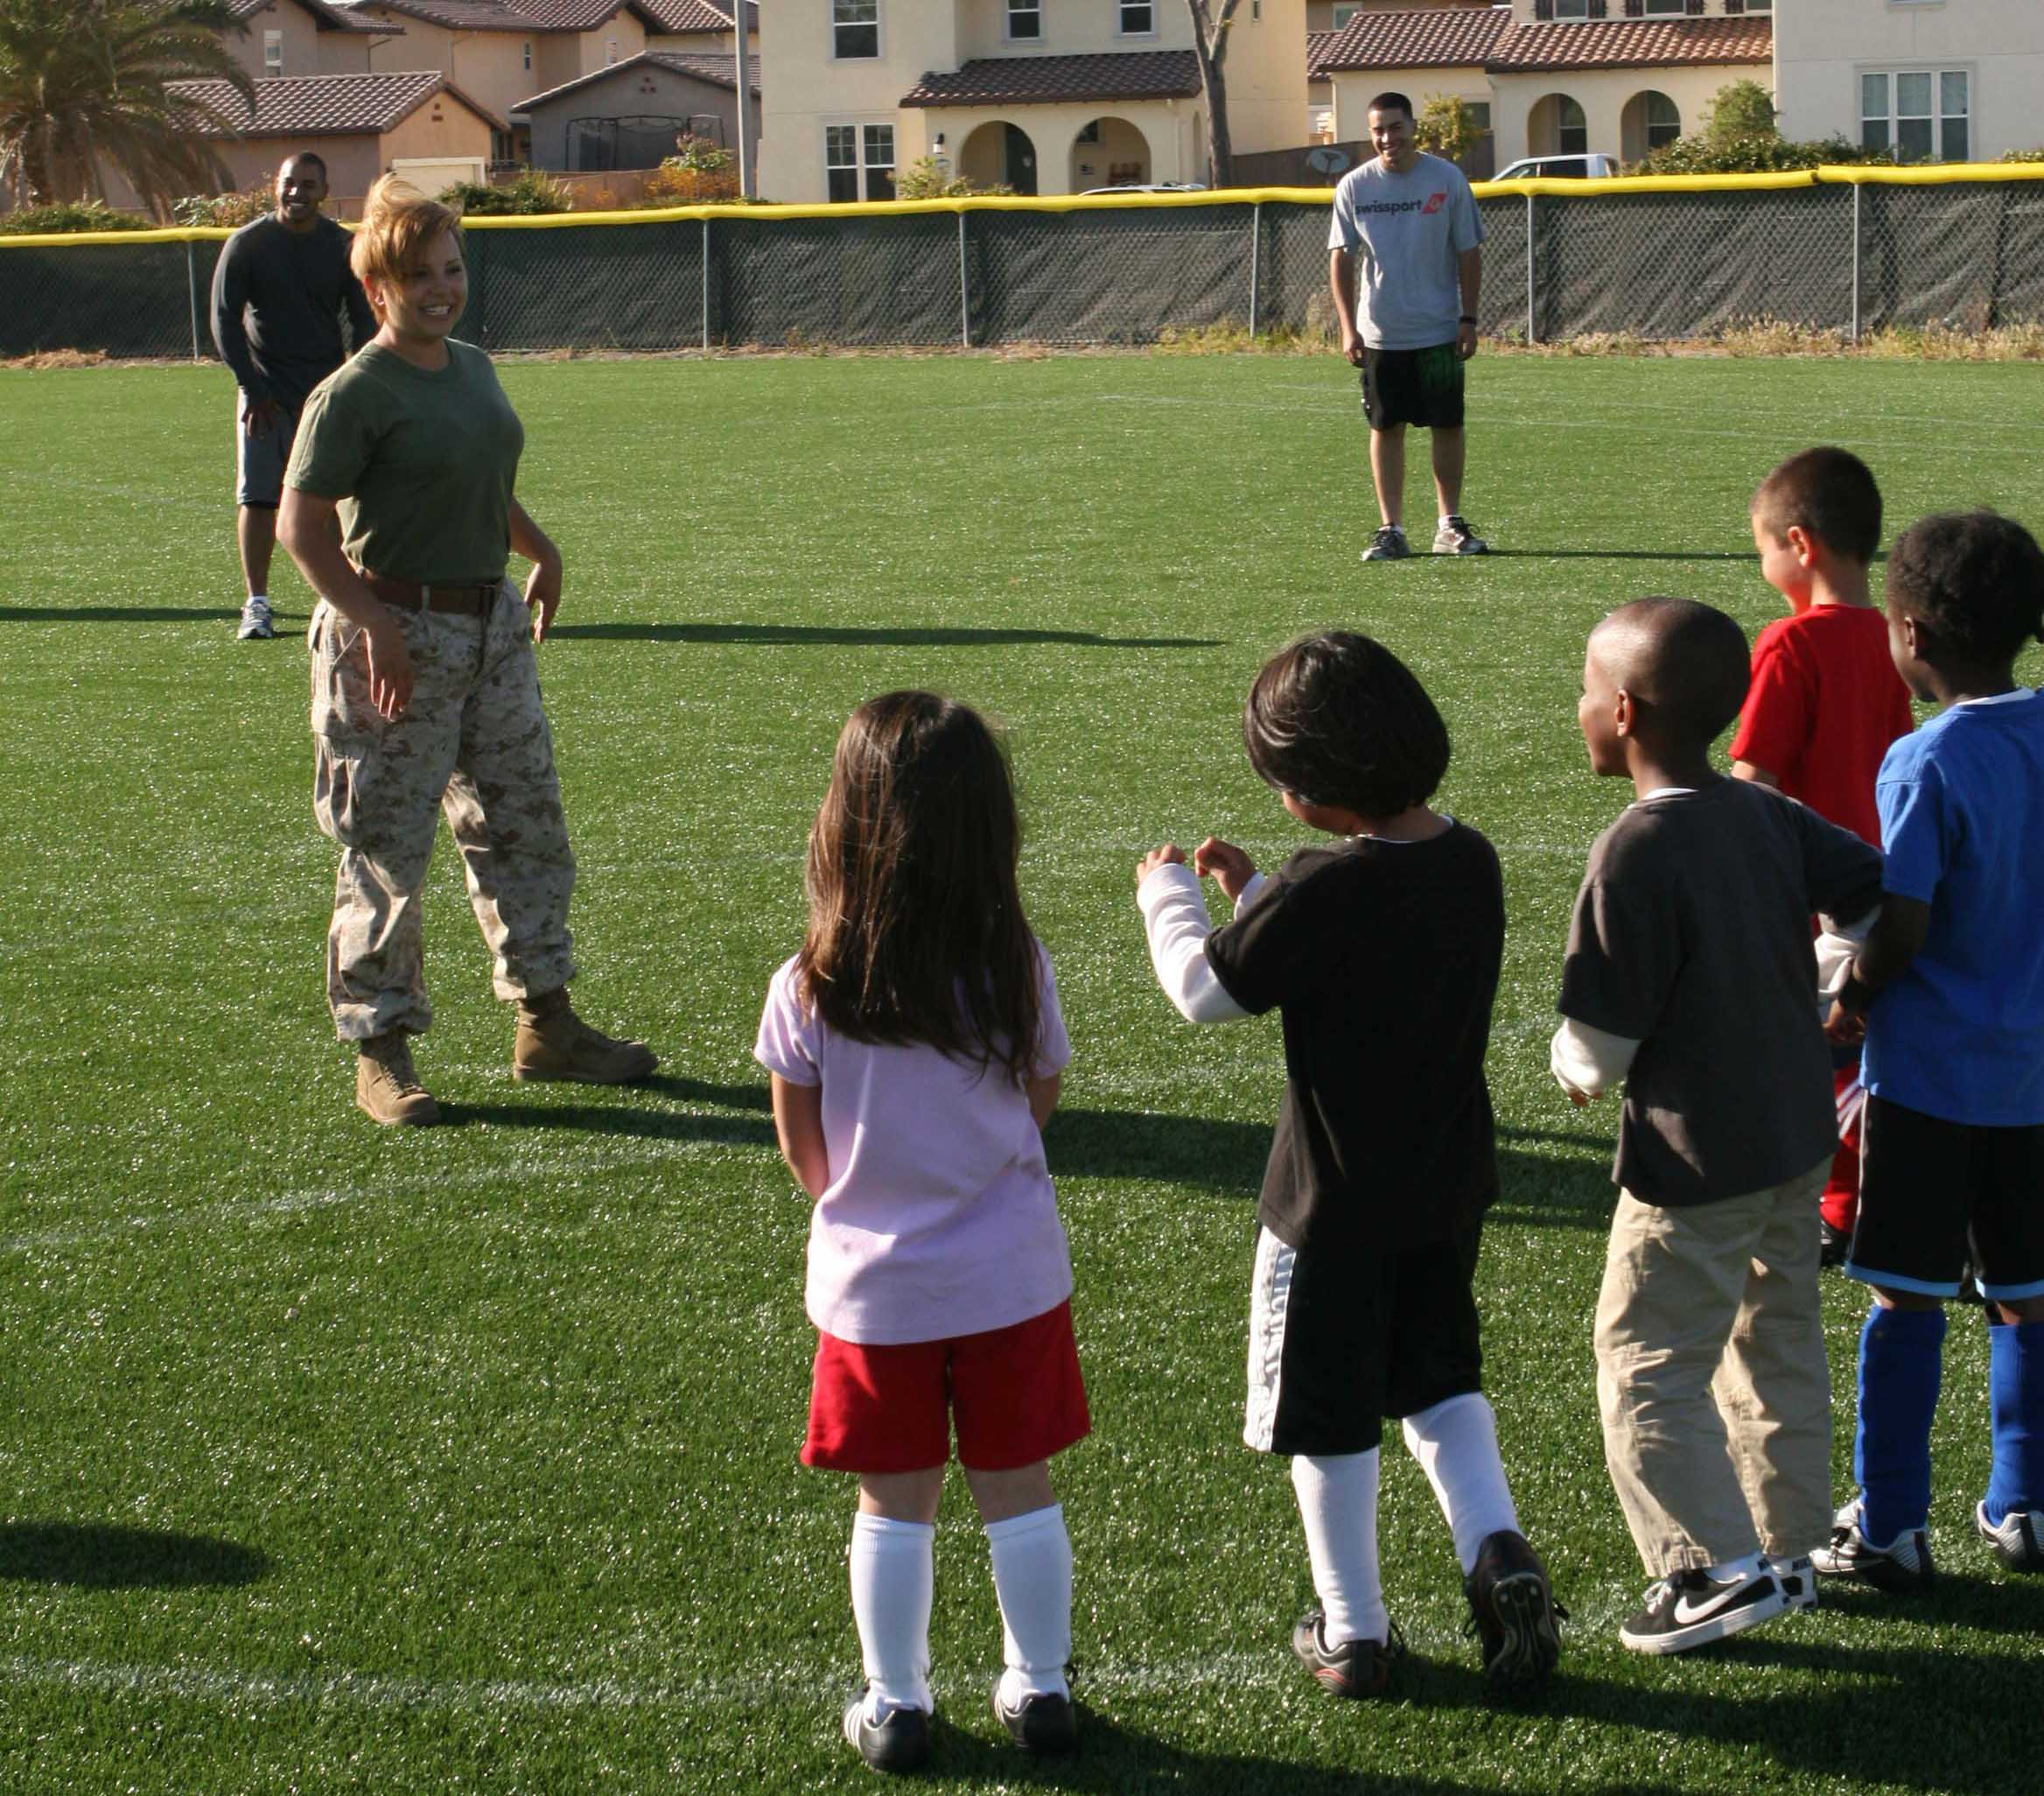 female marines in the media the semi normal day to day sgt denise serrano the combat camera photography chief headquarters squadron lines up a soccer team of five year olds for a kick at practice on